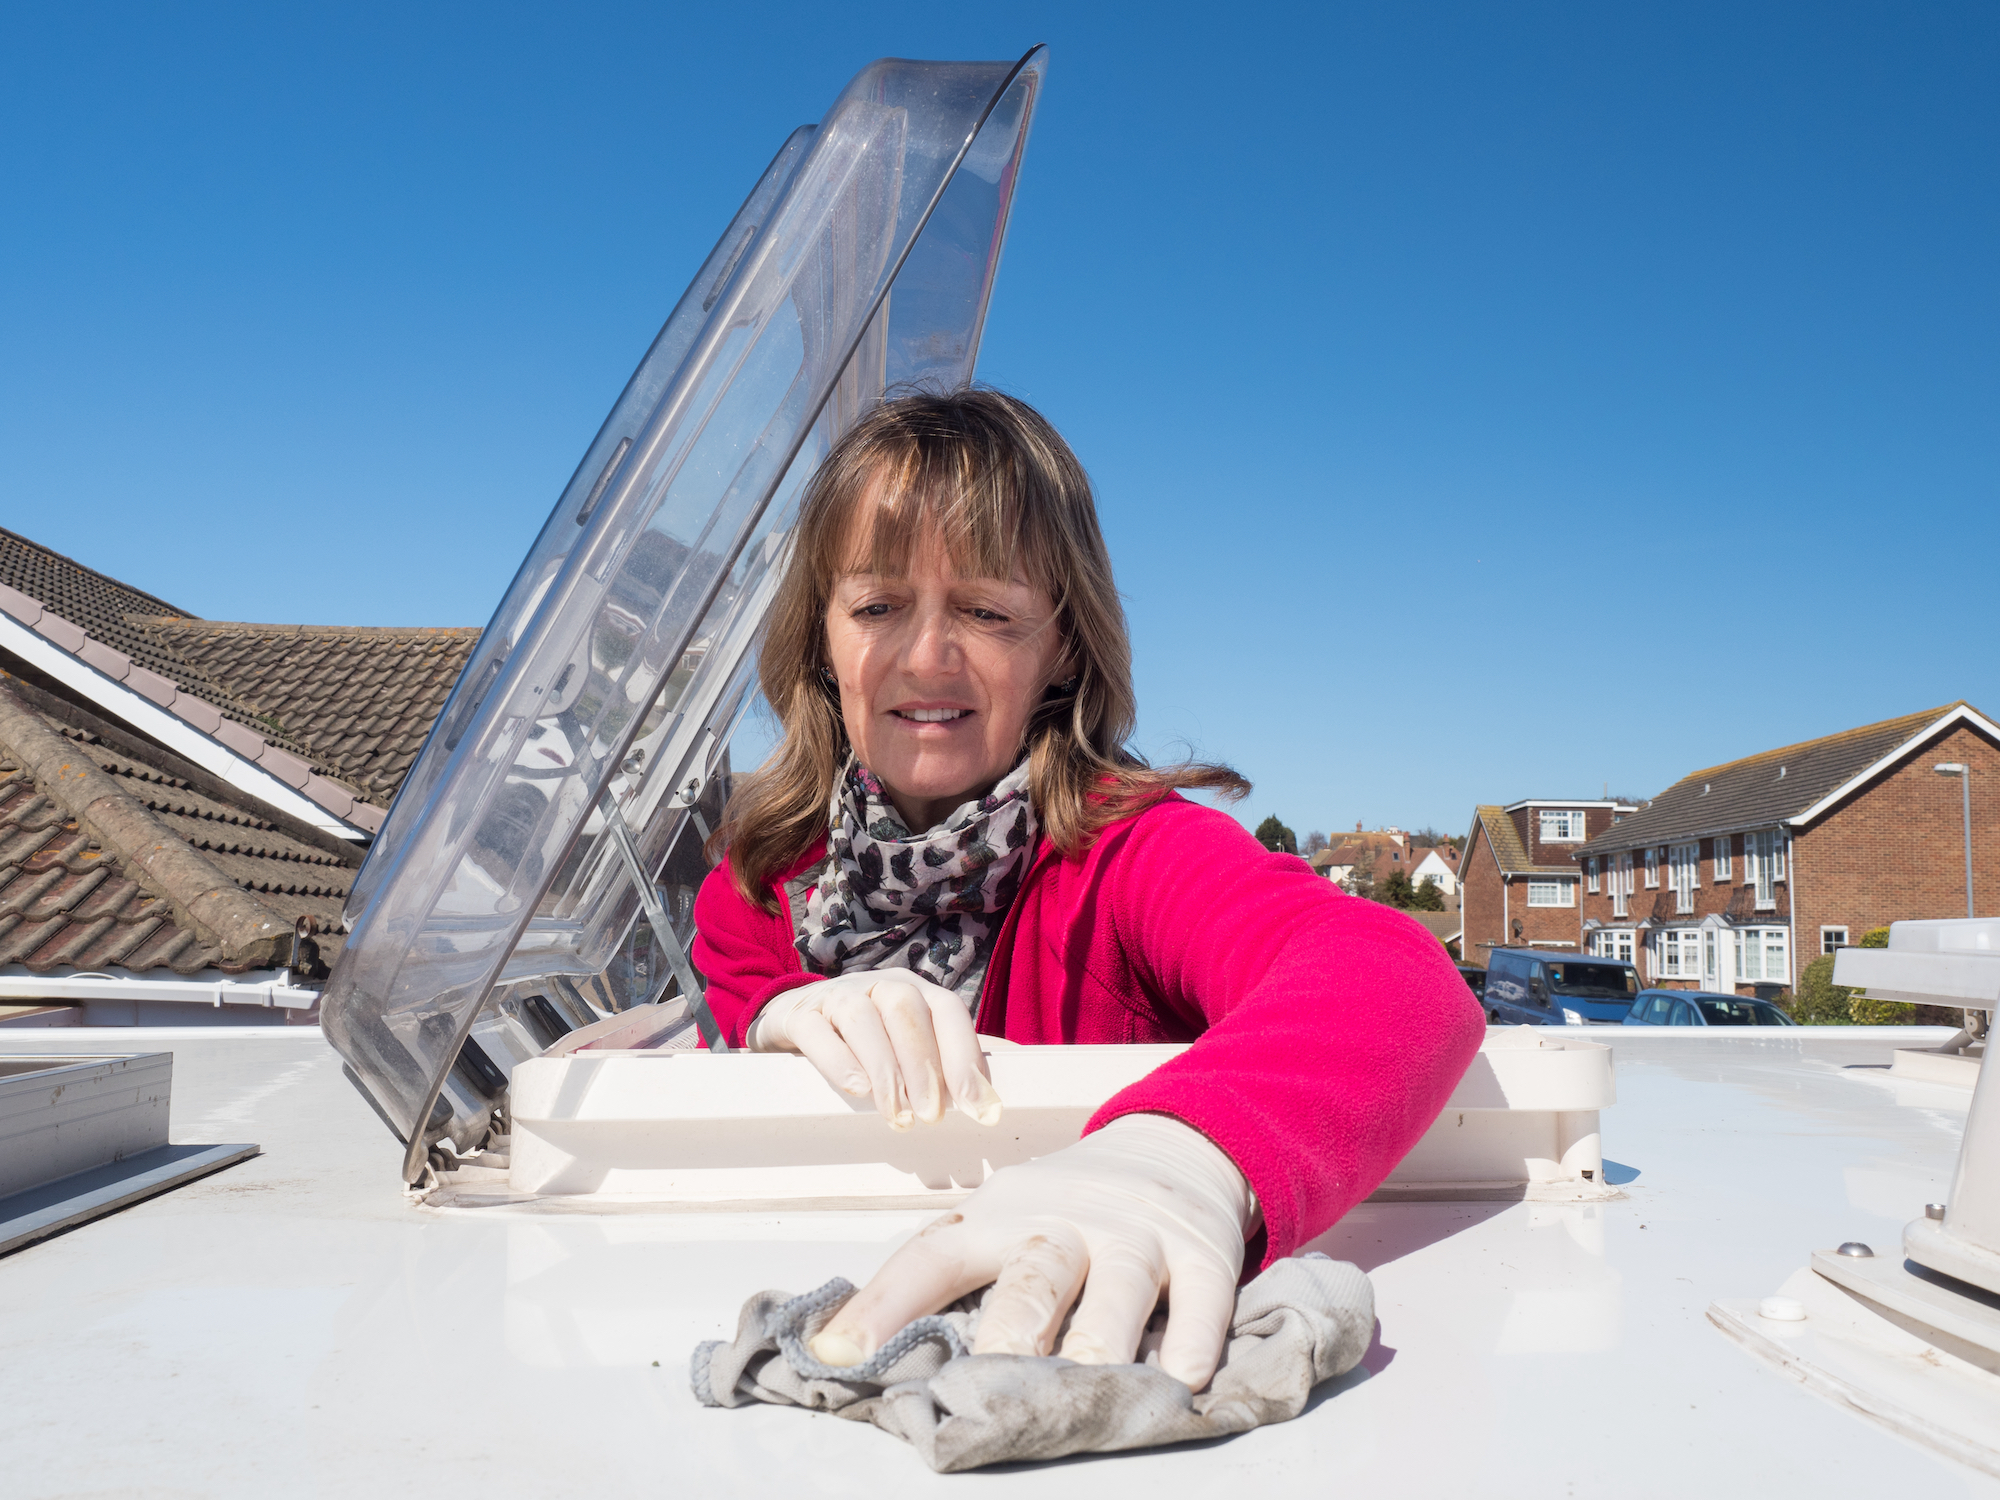 A lady motorhome owner cleans the roof of her vehicle with latex gloves on.The top half of her body is visible as she has climbed through the roof skylight.Vivid pink fleece.Amusing.Image